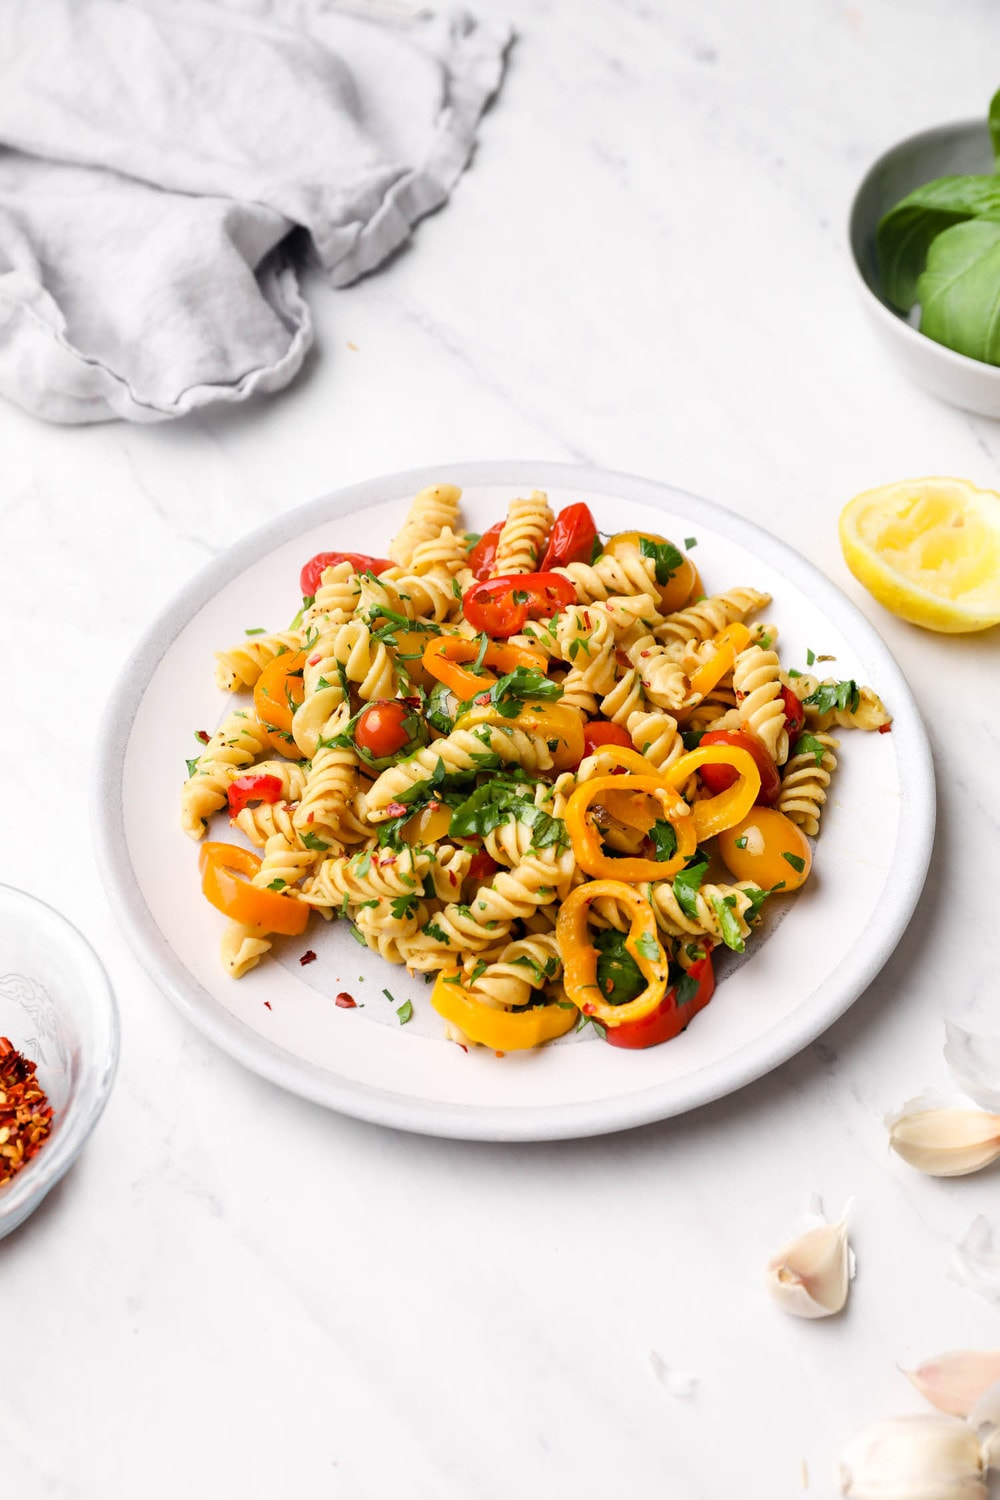 Vegan Pasta Primavera with peppers and tomatoes.